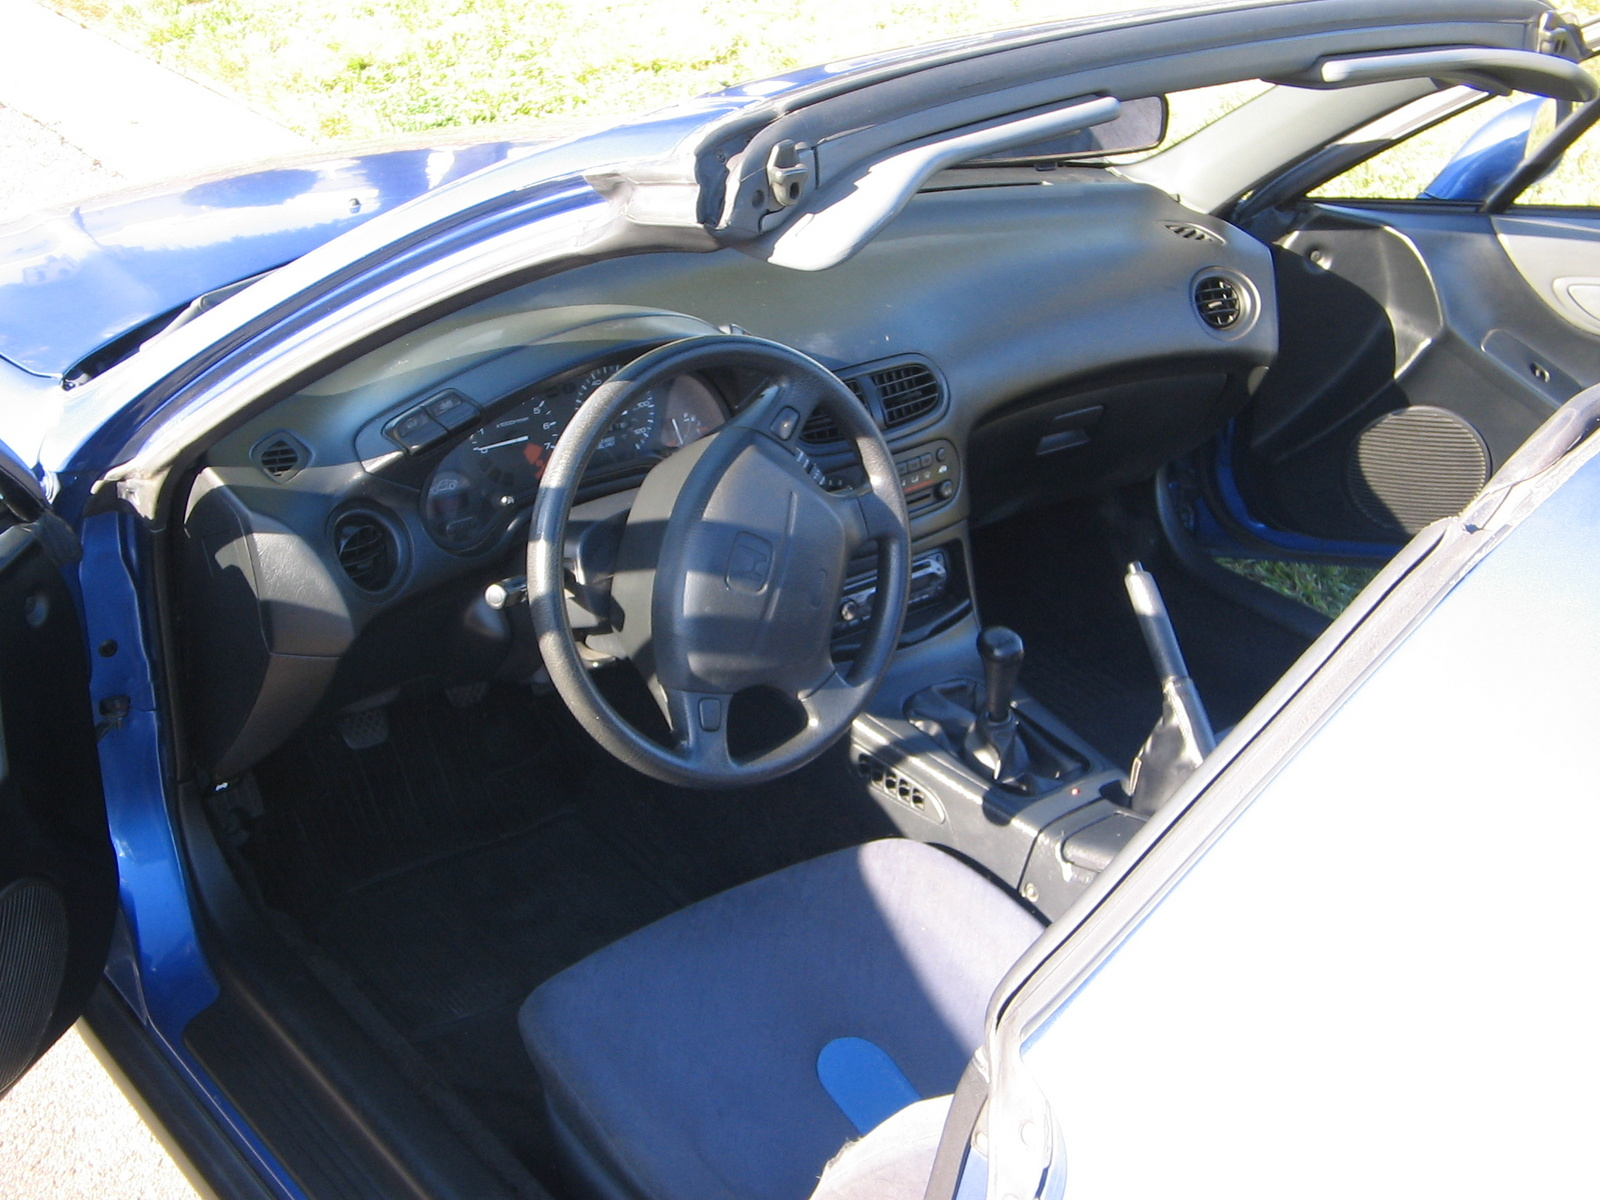 Honda Civic del Sol interior #2